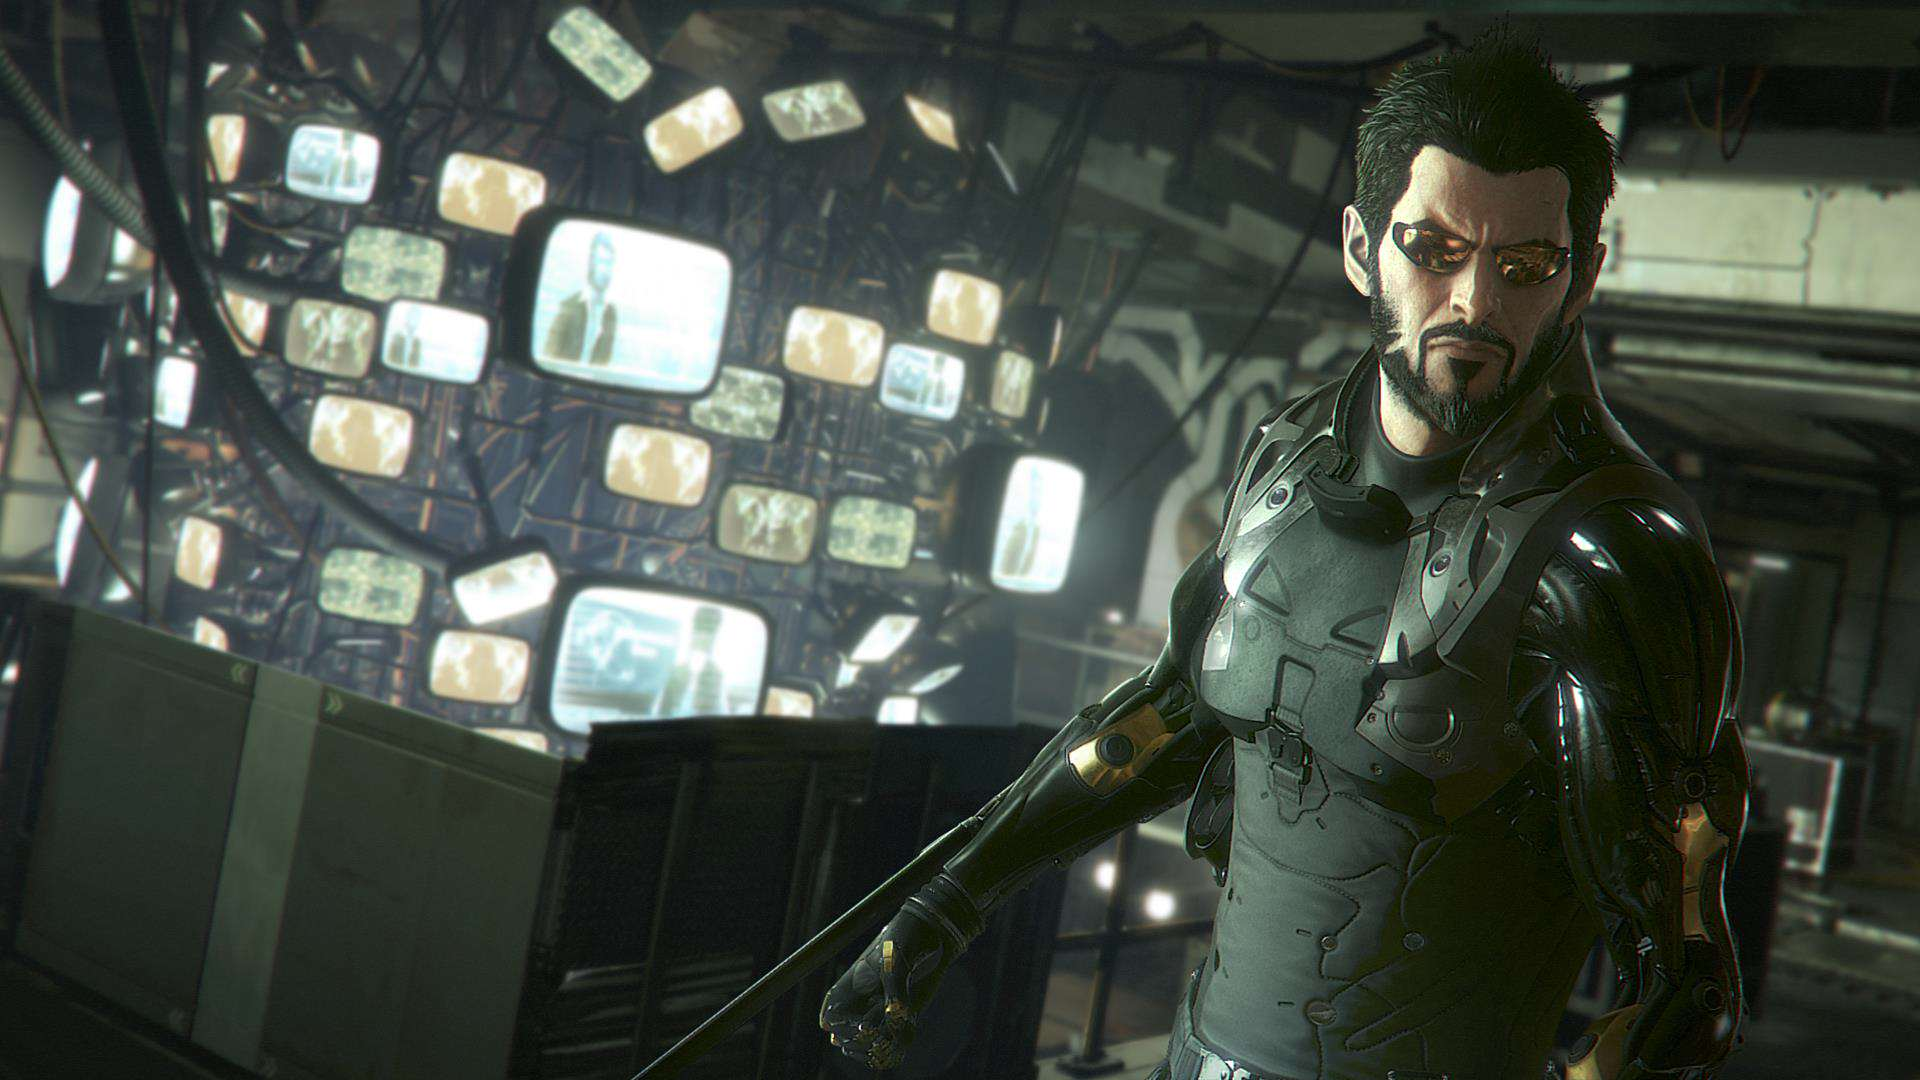 nbegbudgpu19kztgorh5 Deus Ex: Mankind Divided Gameplay Livestream Airing Today